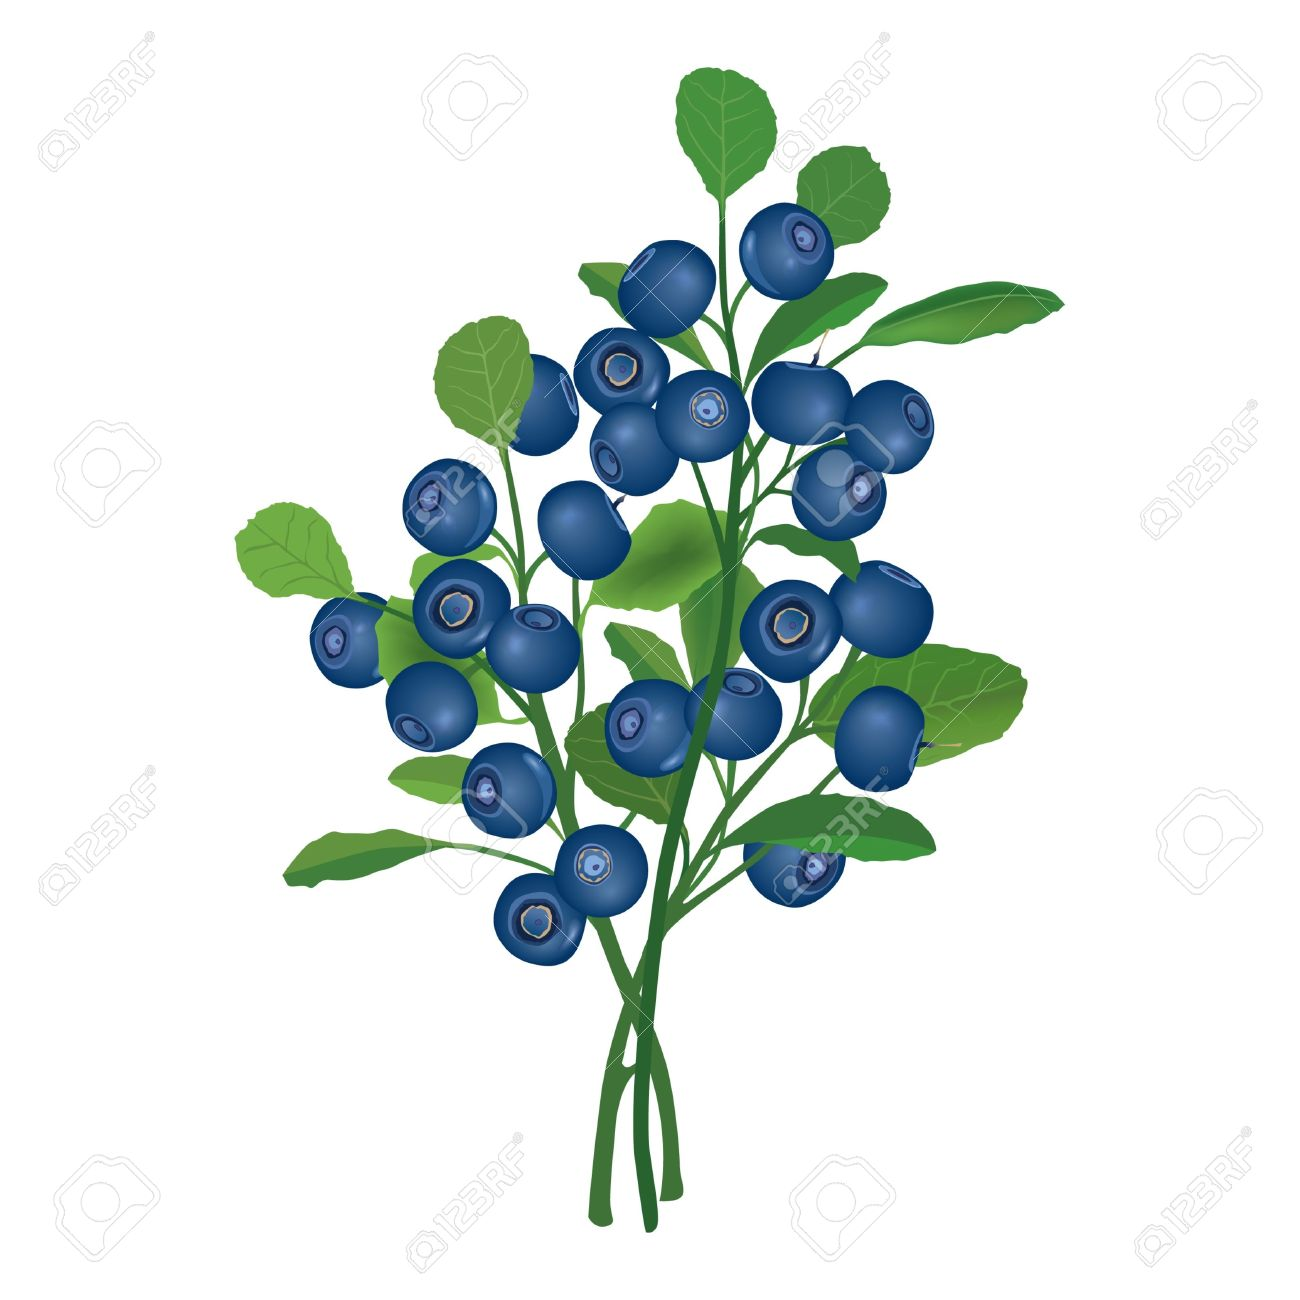 Drawn rose bush small Bush Blueberry Clipart cliparts Berry